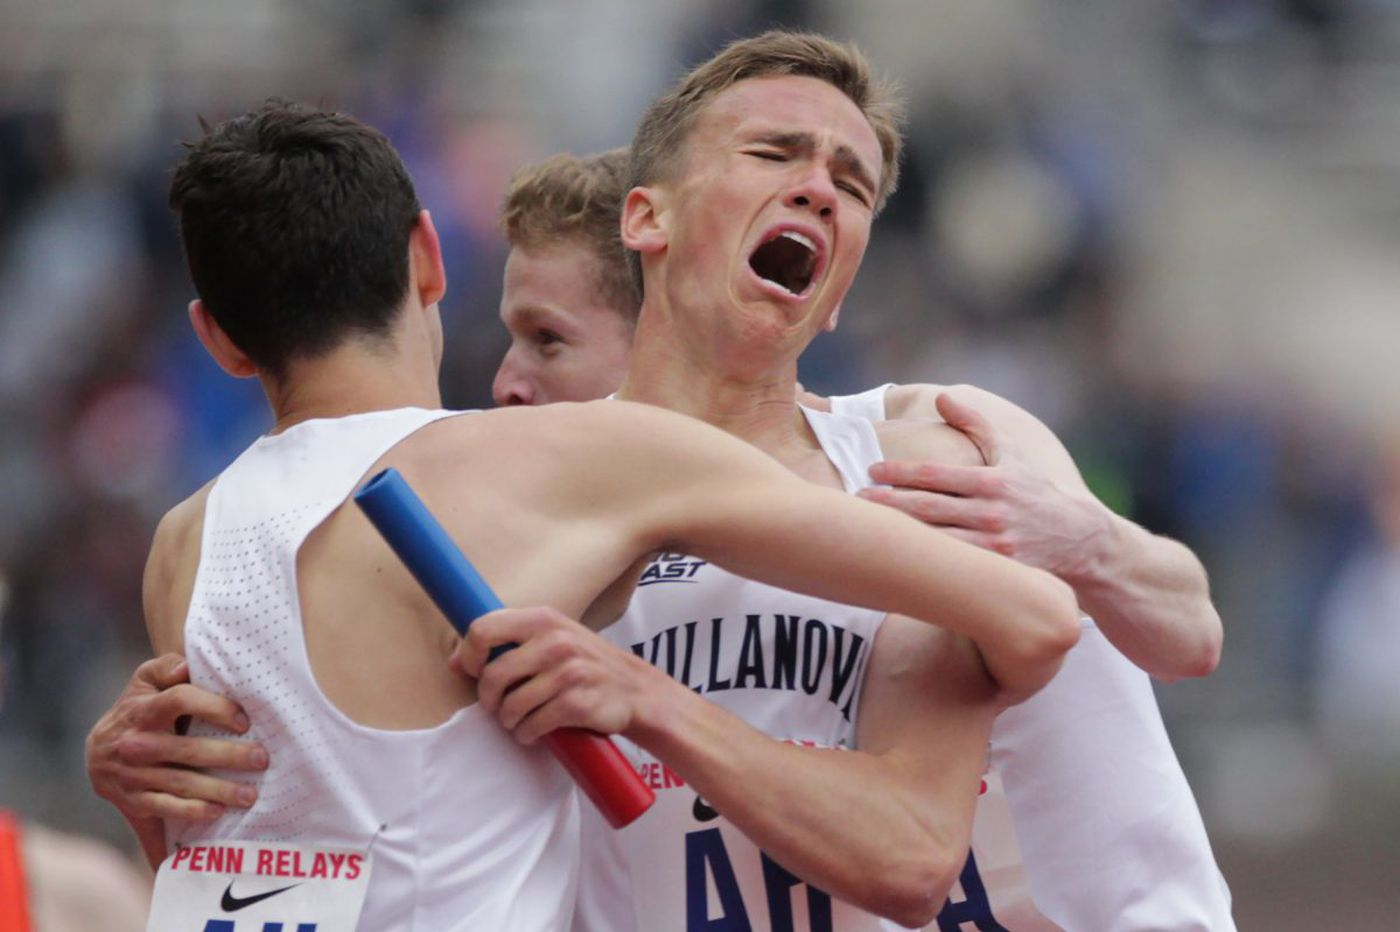 Inspired Villanova men win distance medley relay at Penn Relays